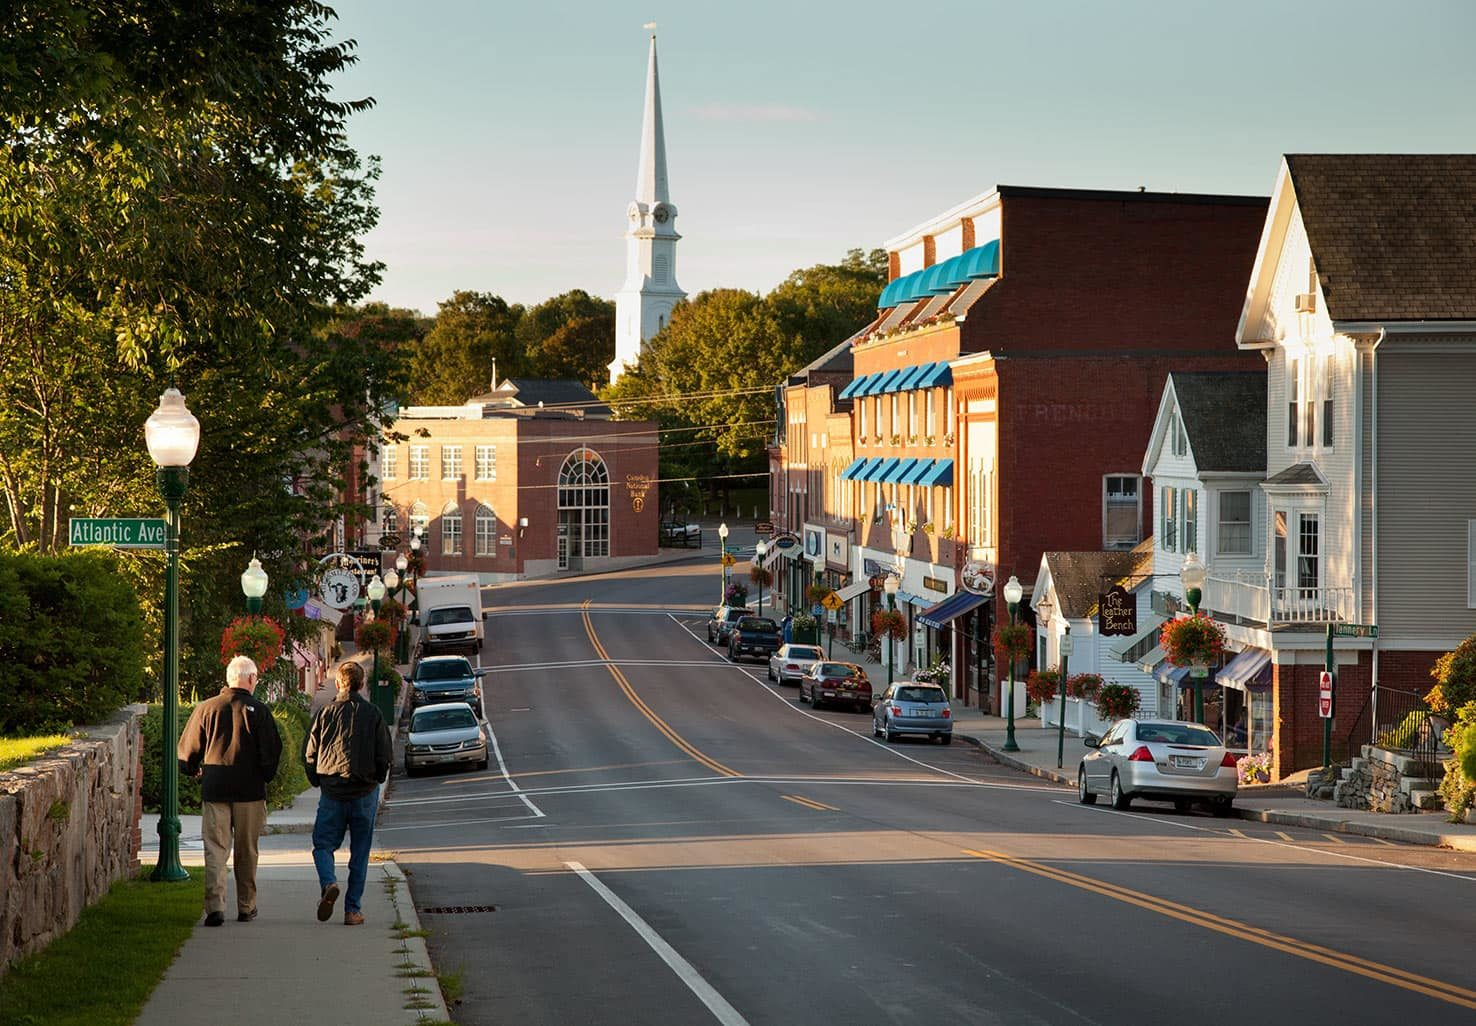 Streets in the Town of Camden, ME